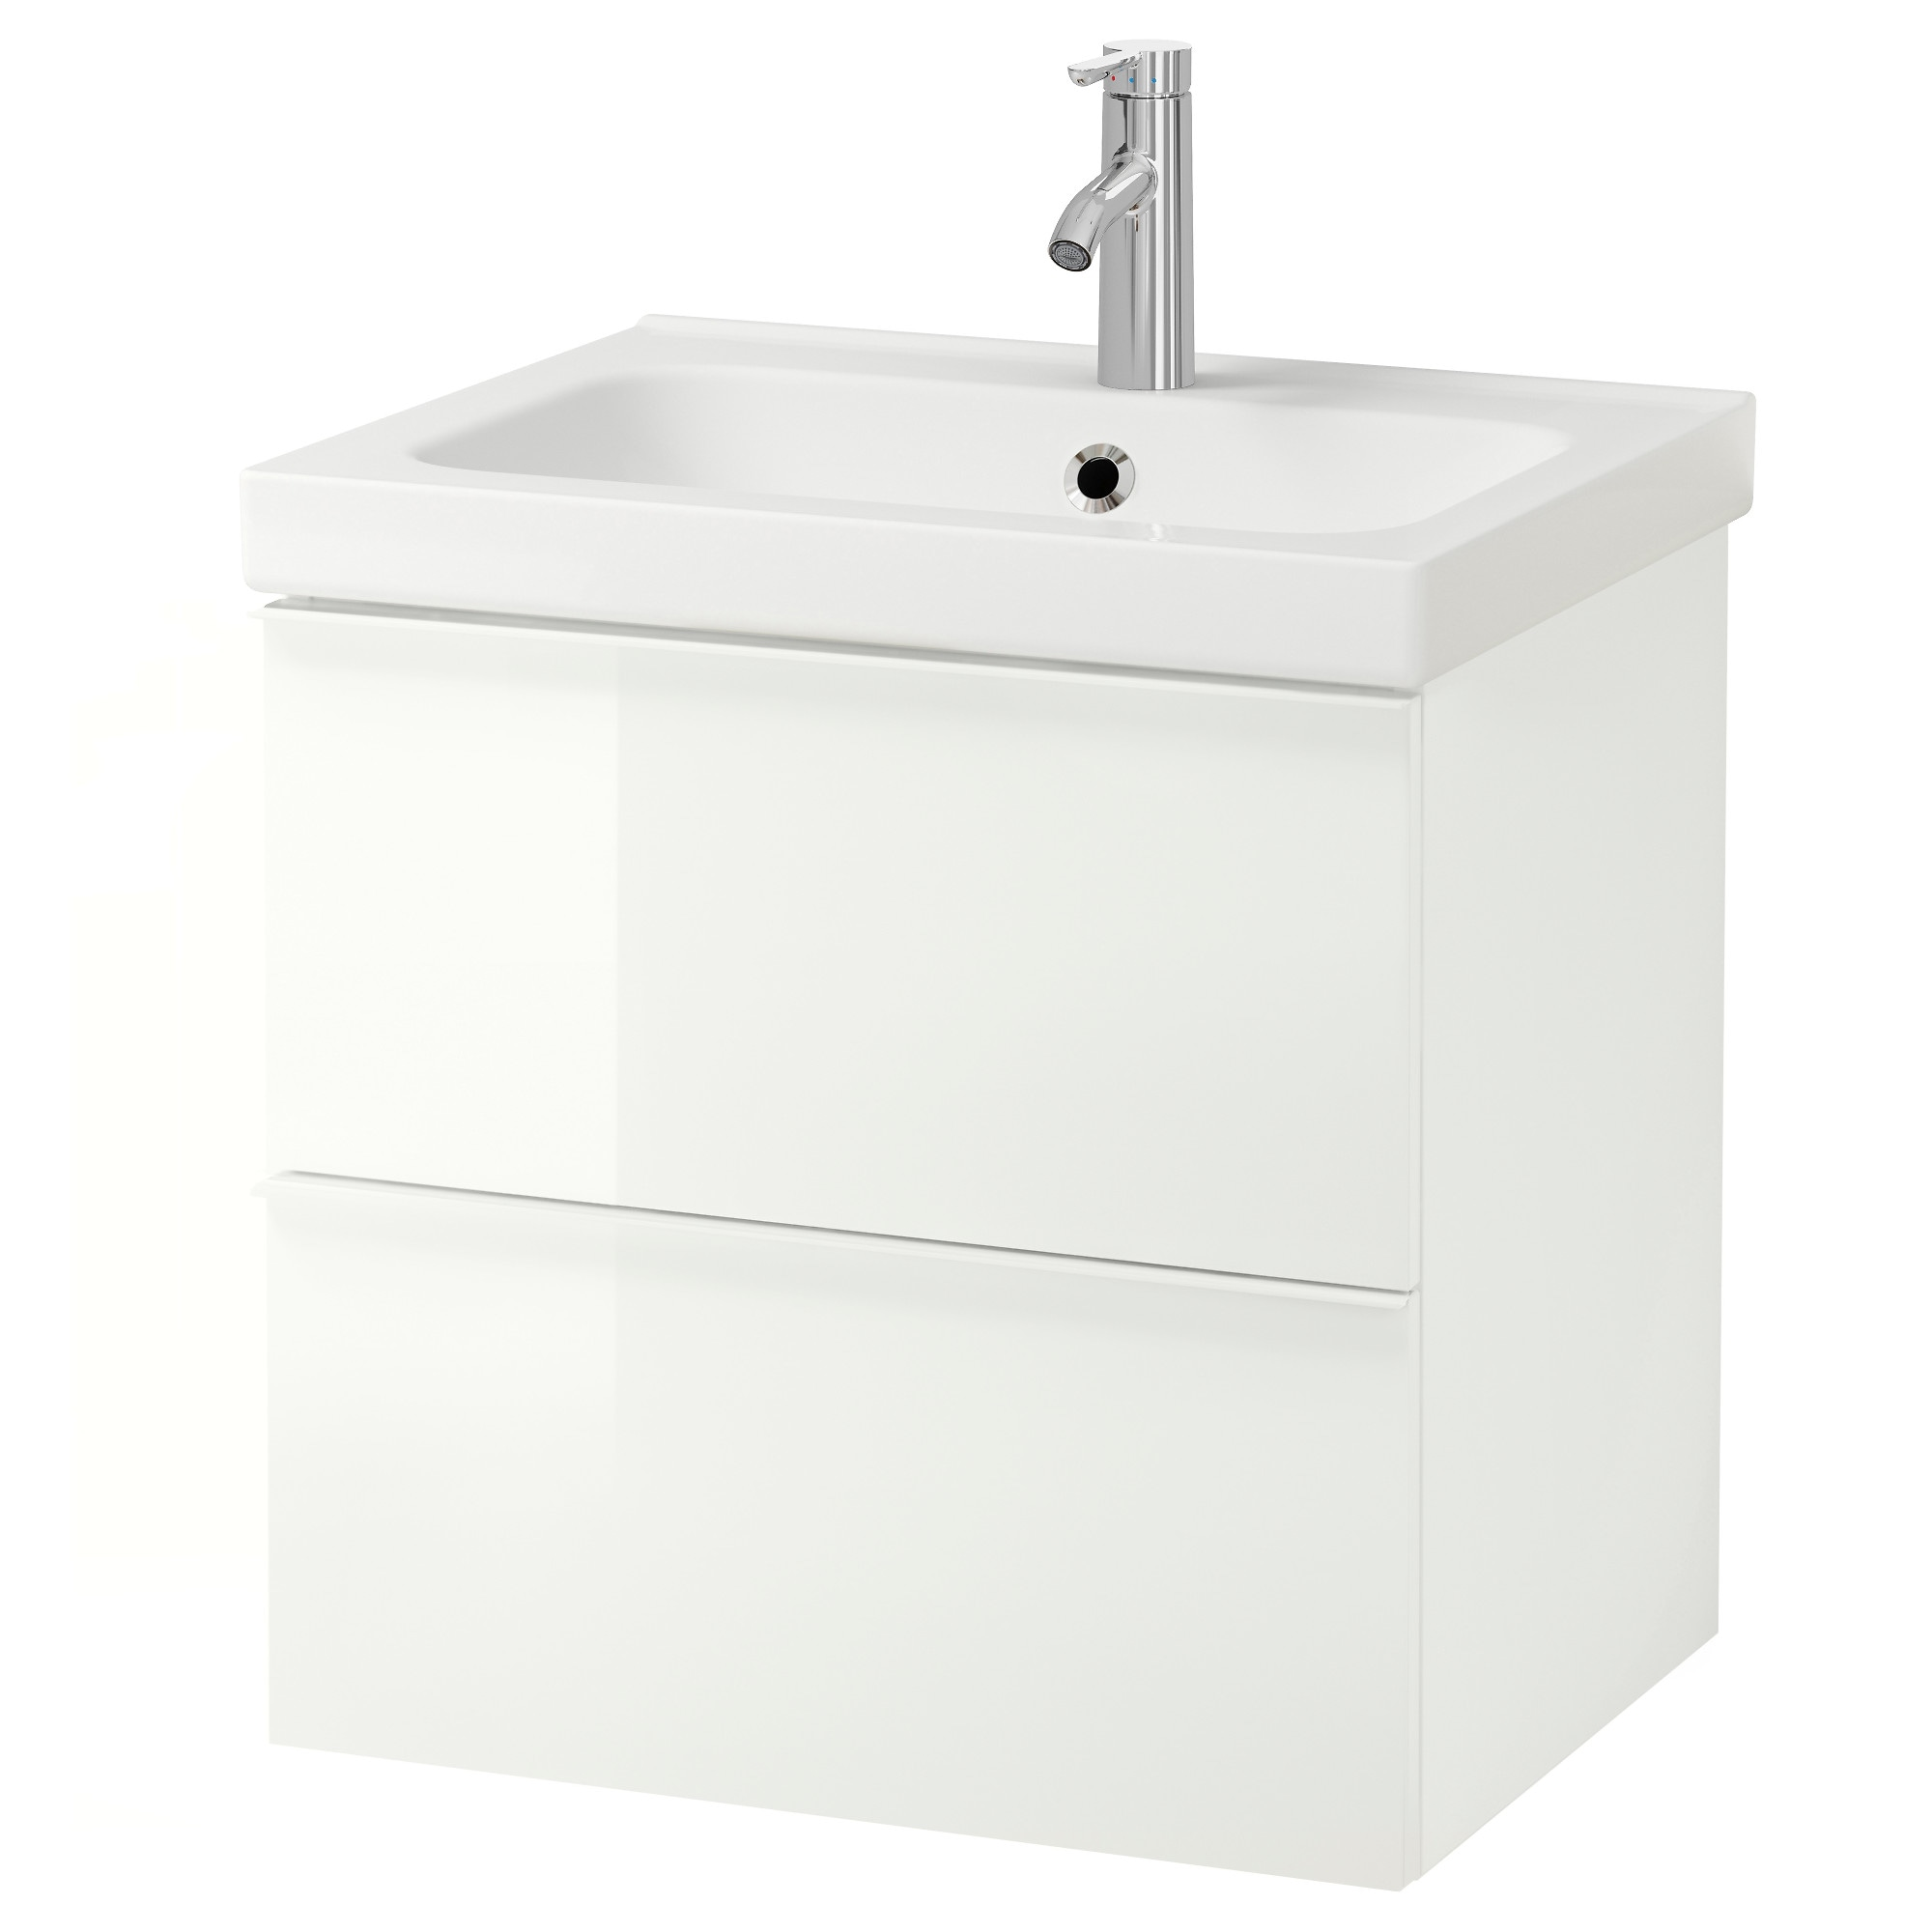 Bathroom Sinks Ikea bathroom vanities & countertops - ikea